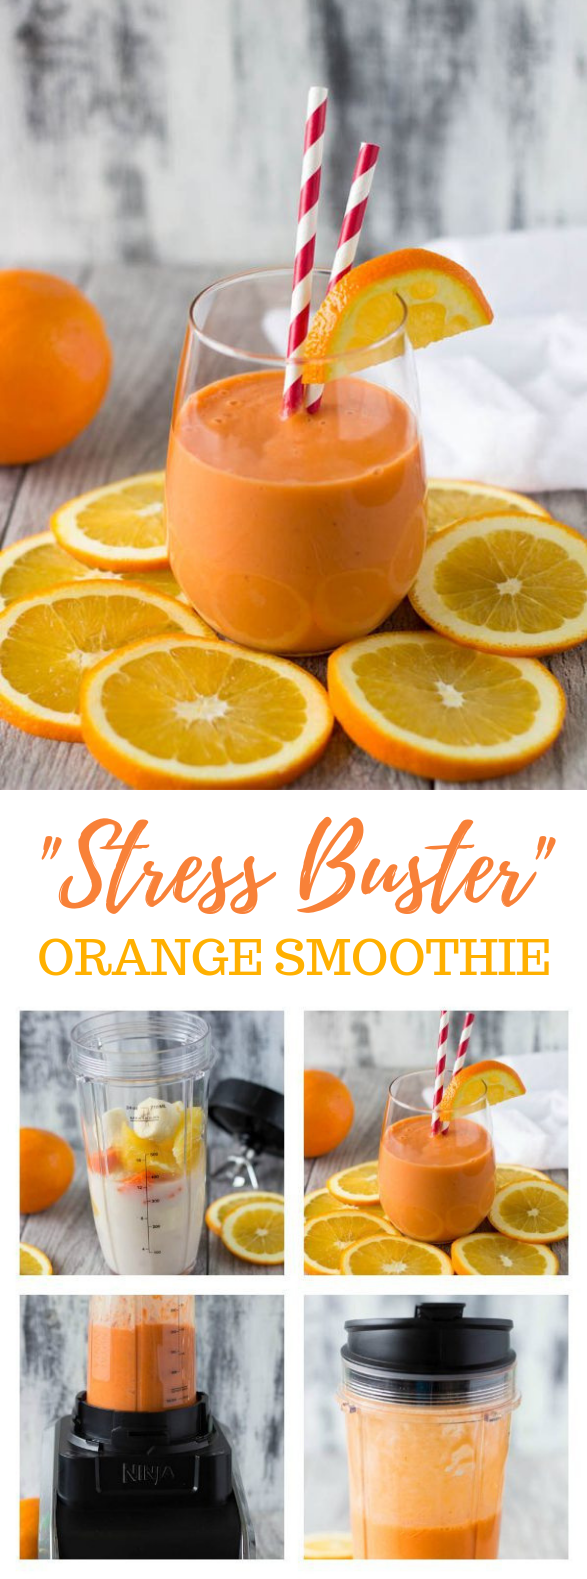 """STRESS BUSTER"" ORANGE SMOOTHIE #christmasdrink #smoothies"